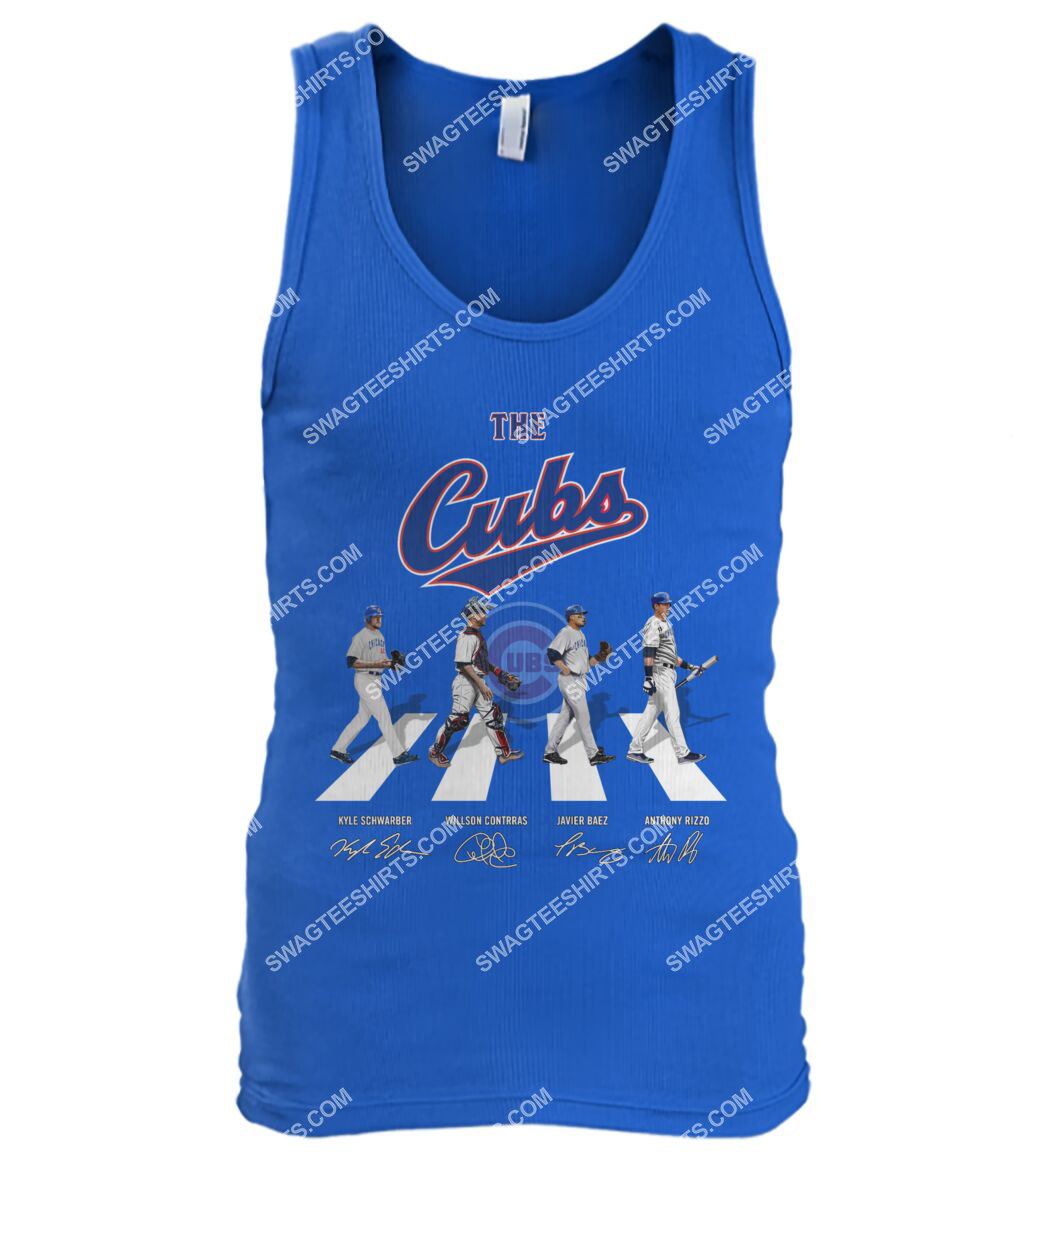 abbey road the chicago cubs signatures tank top 1